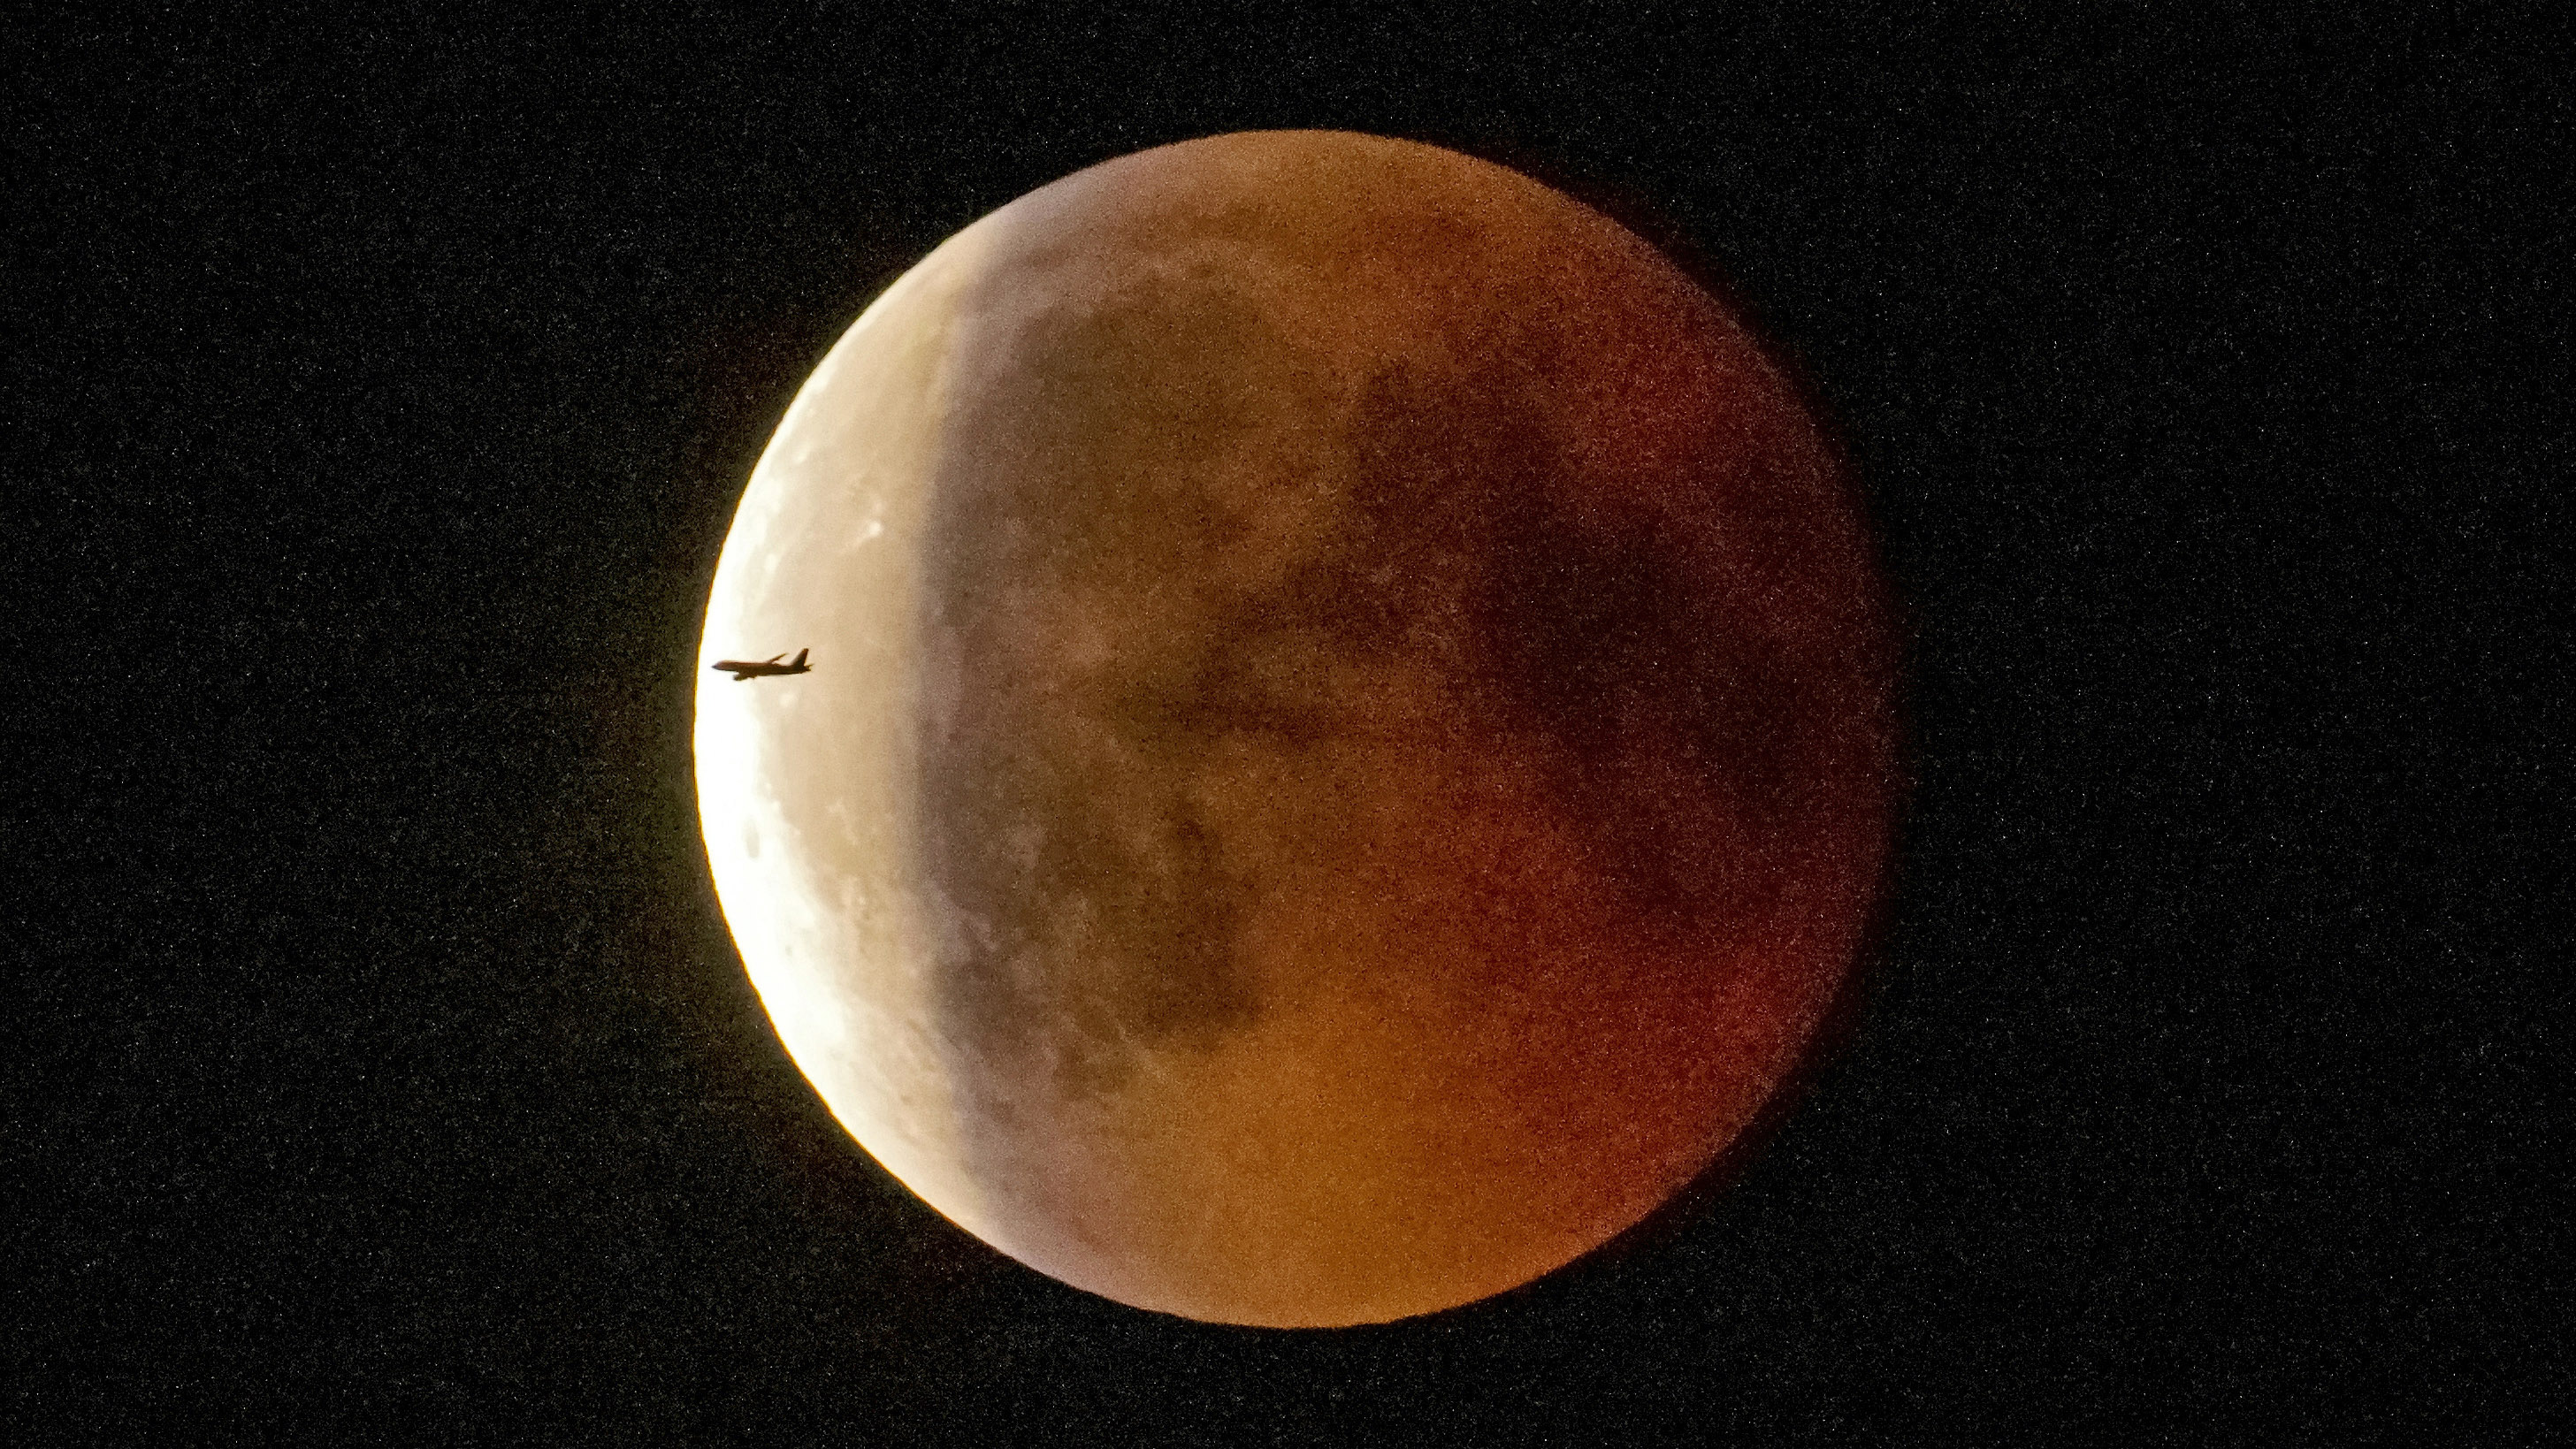 Lunar Eclipse July 2018 Images Of The Super Blood Moon And The